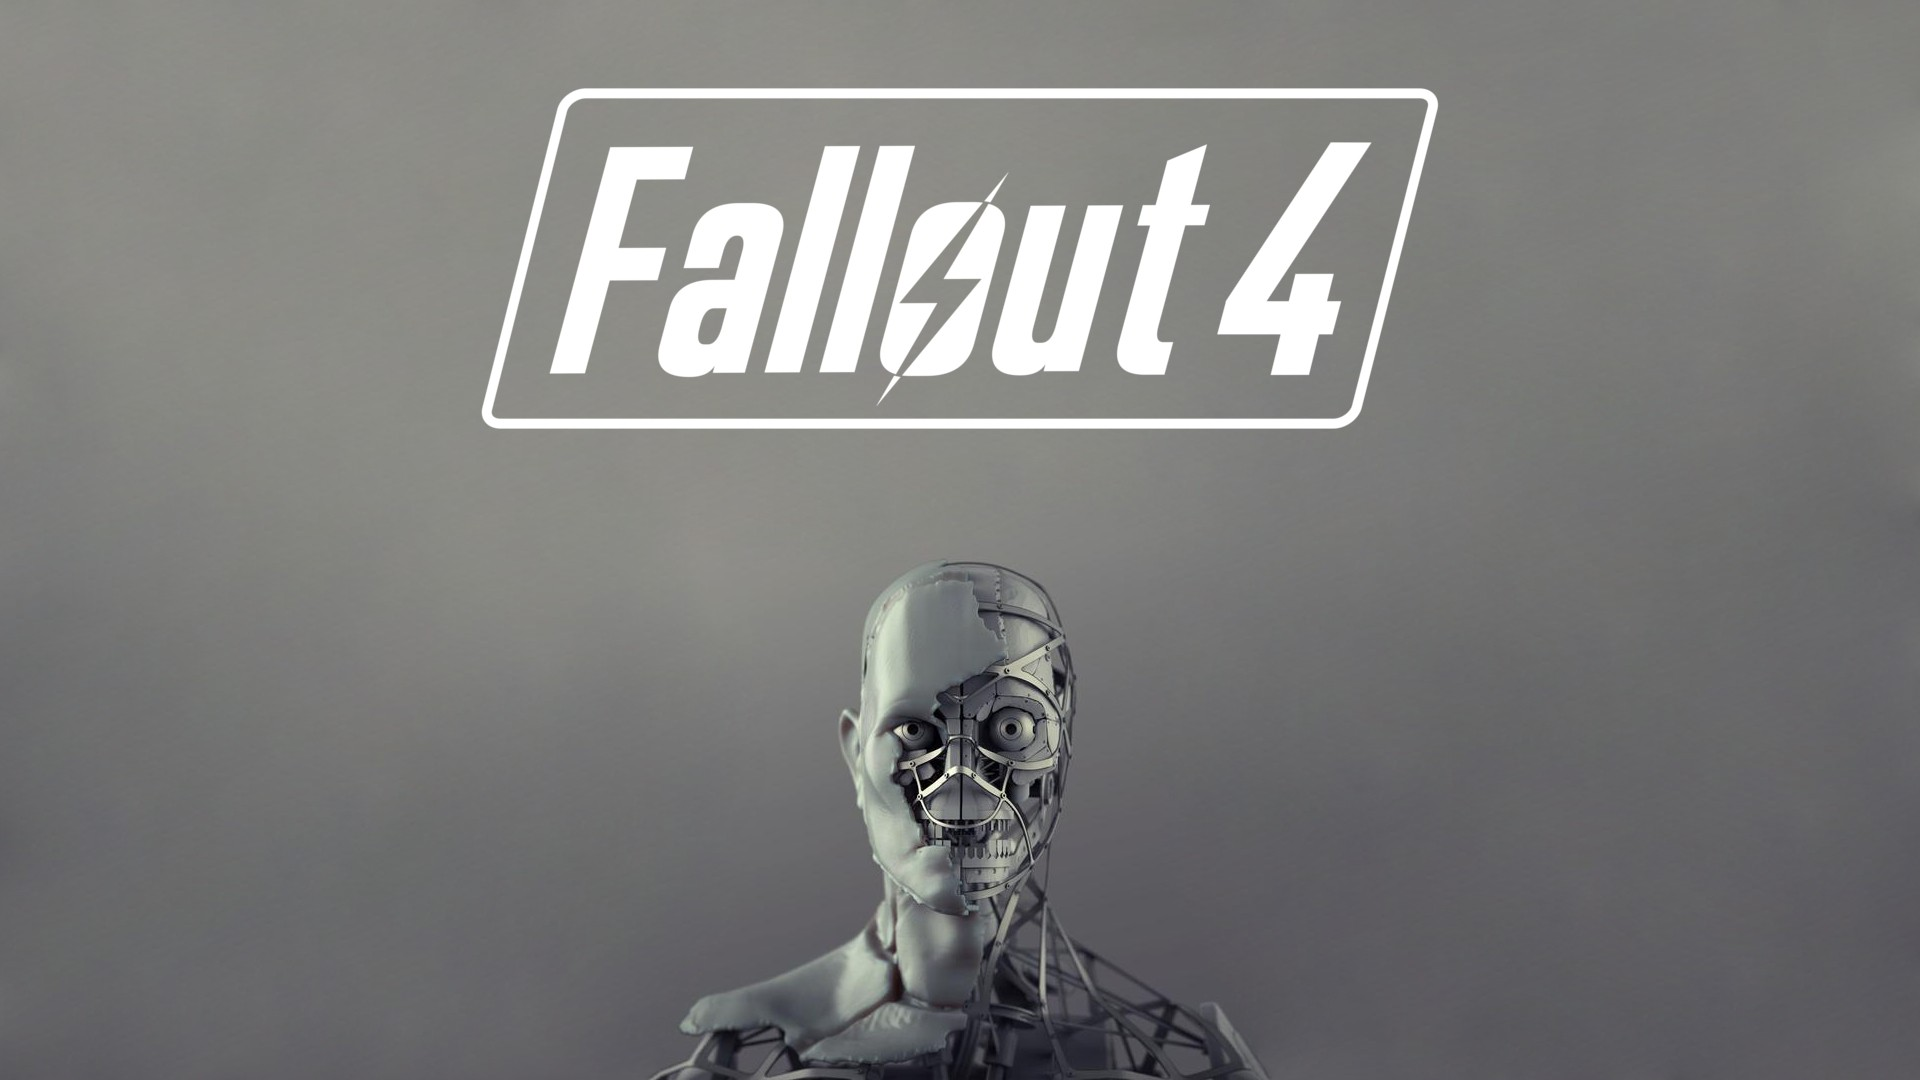 how to change resolution in fallout 4 1920 to 4k